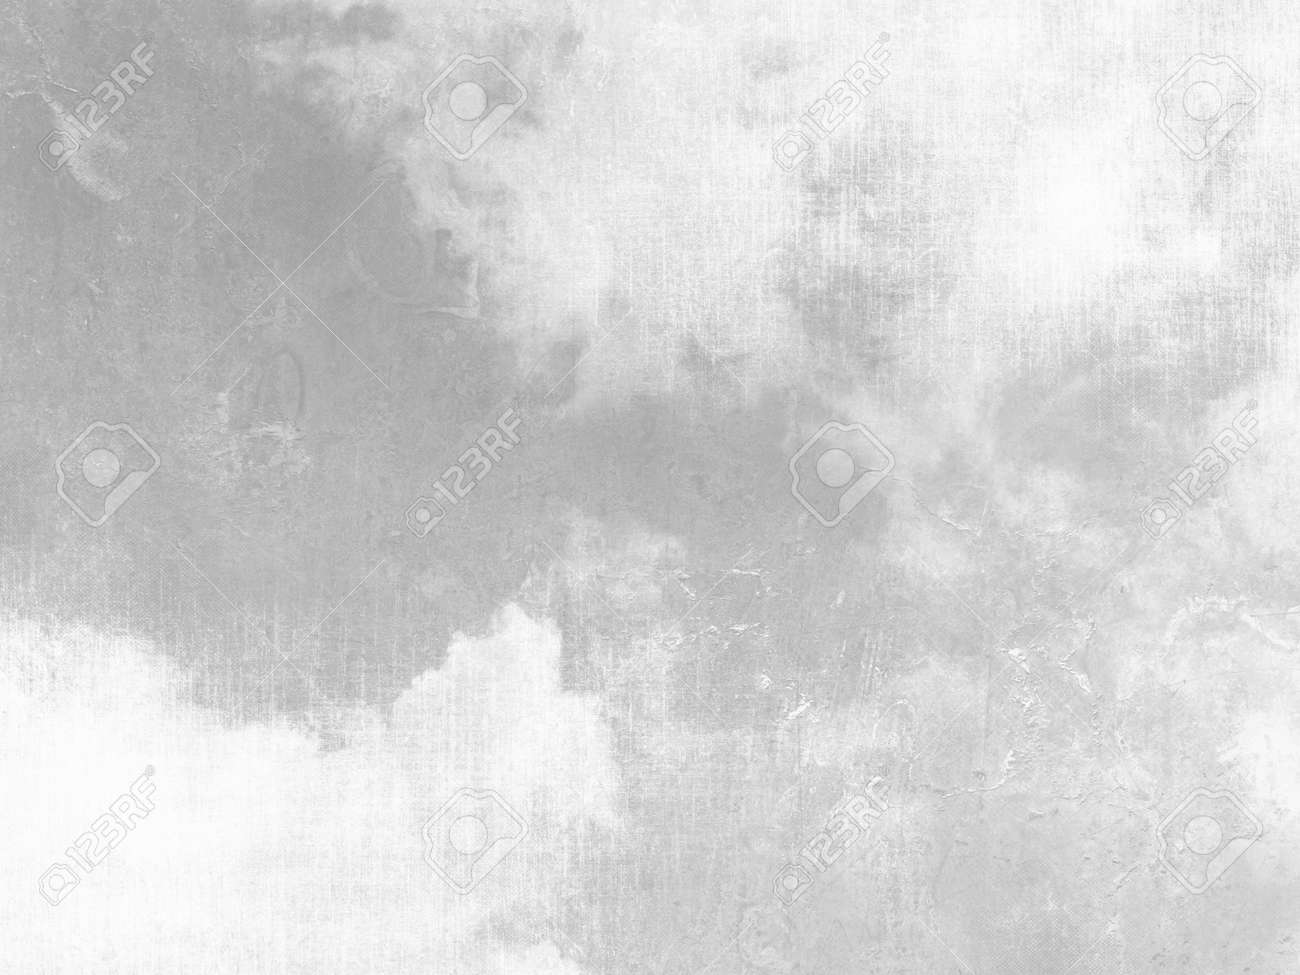 Gray sky background with white clouds and soft vintage texture - 53541063